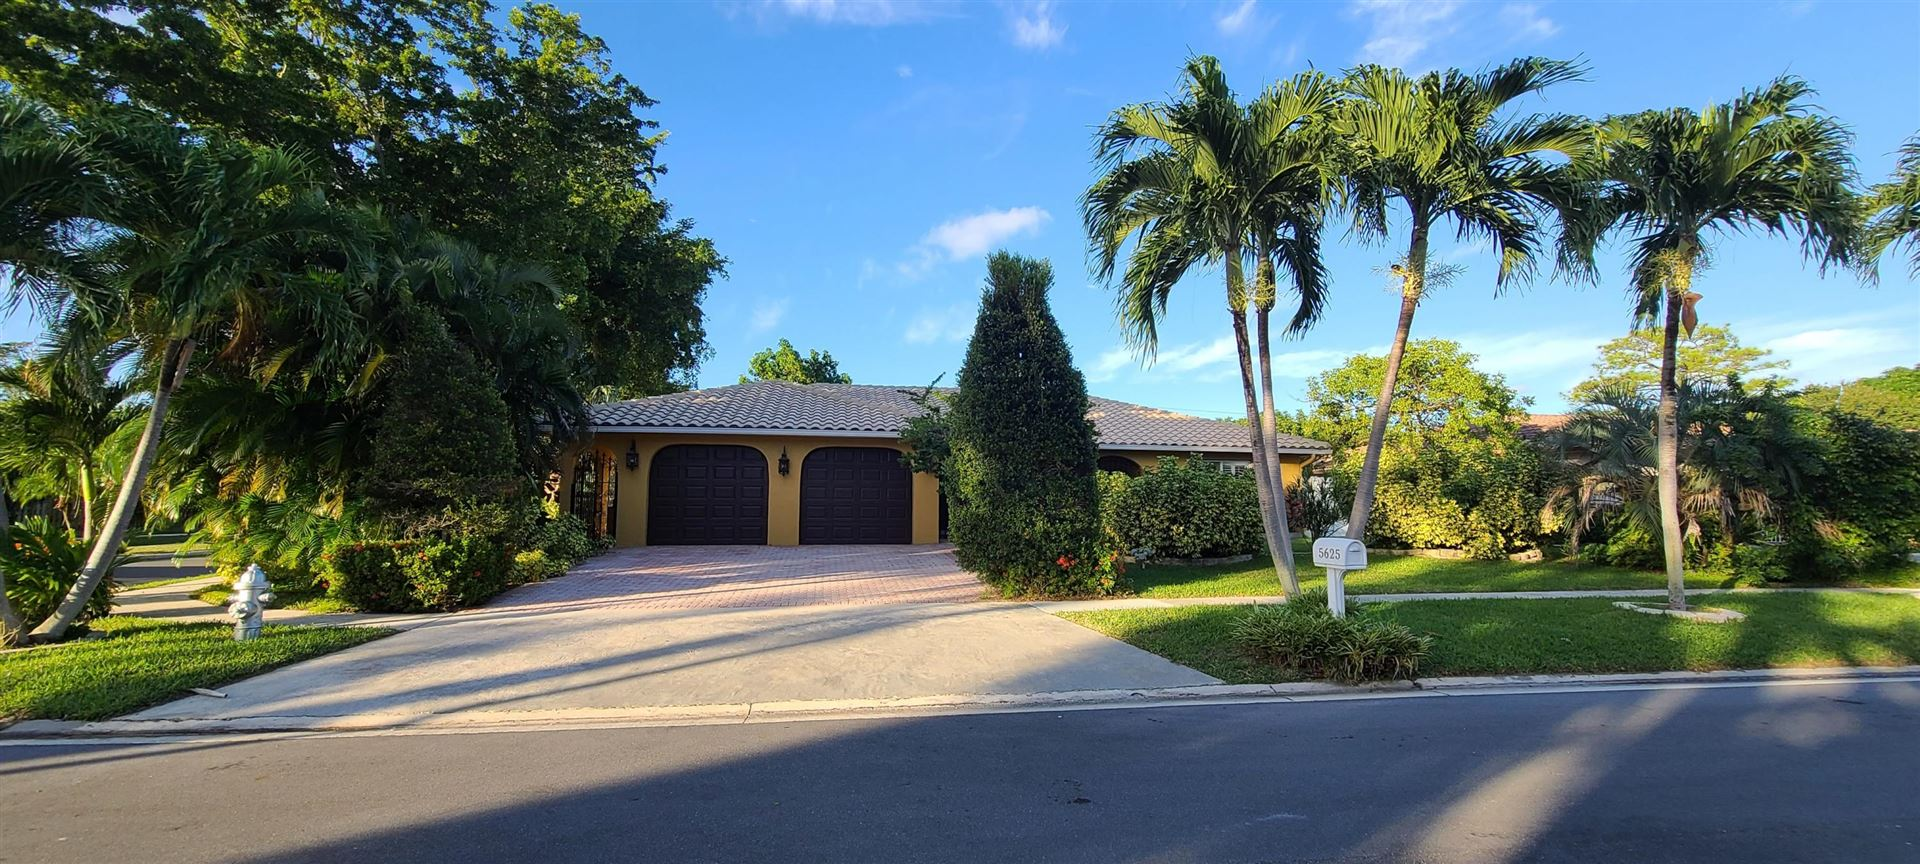 Photo of 5625 Wind Drift Lane, Boca Raton, FL 33433 (MLS # RX-10674471)